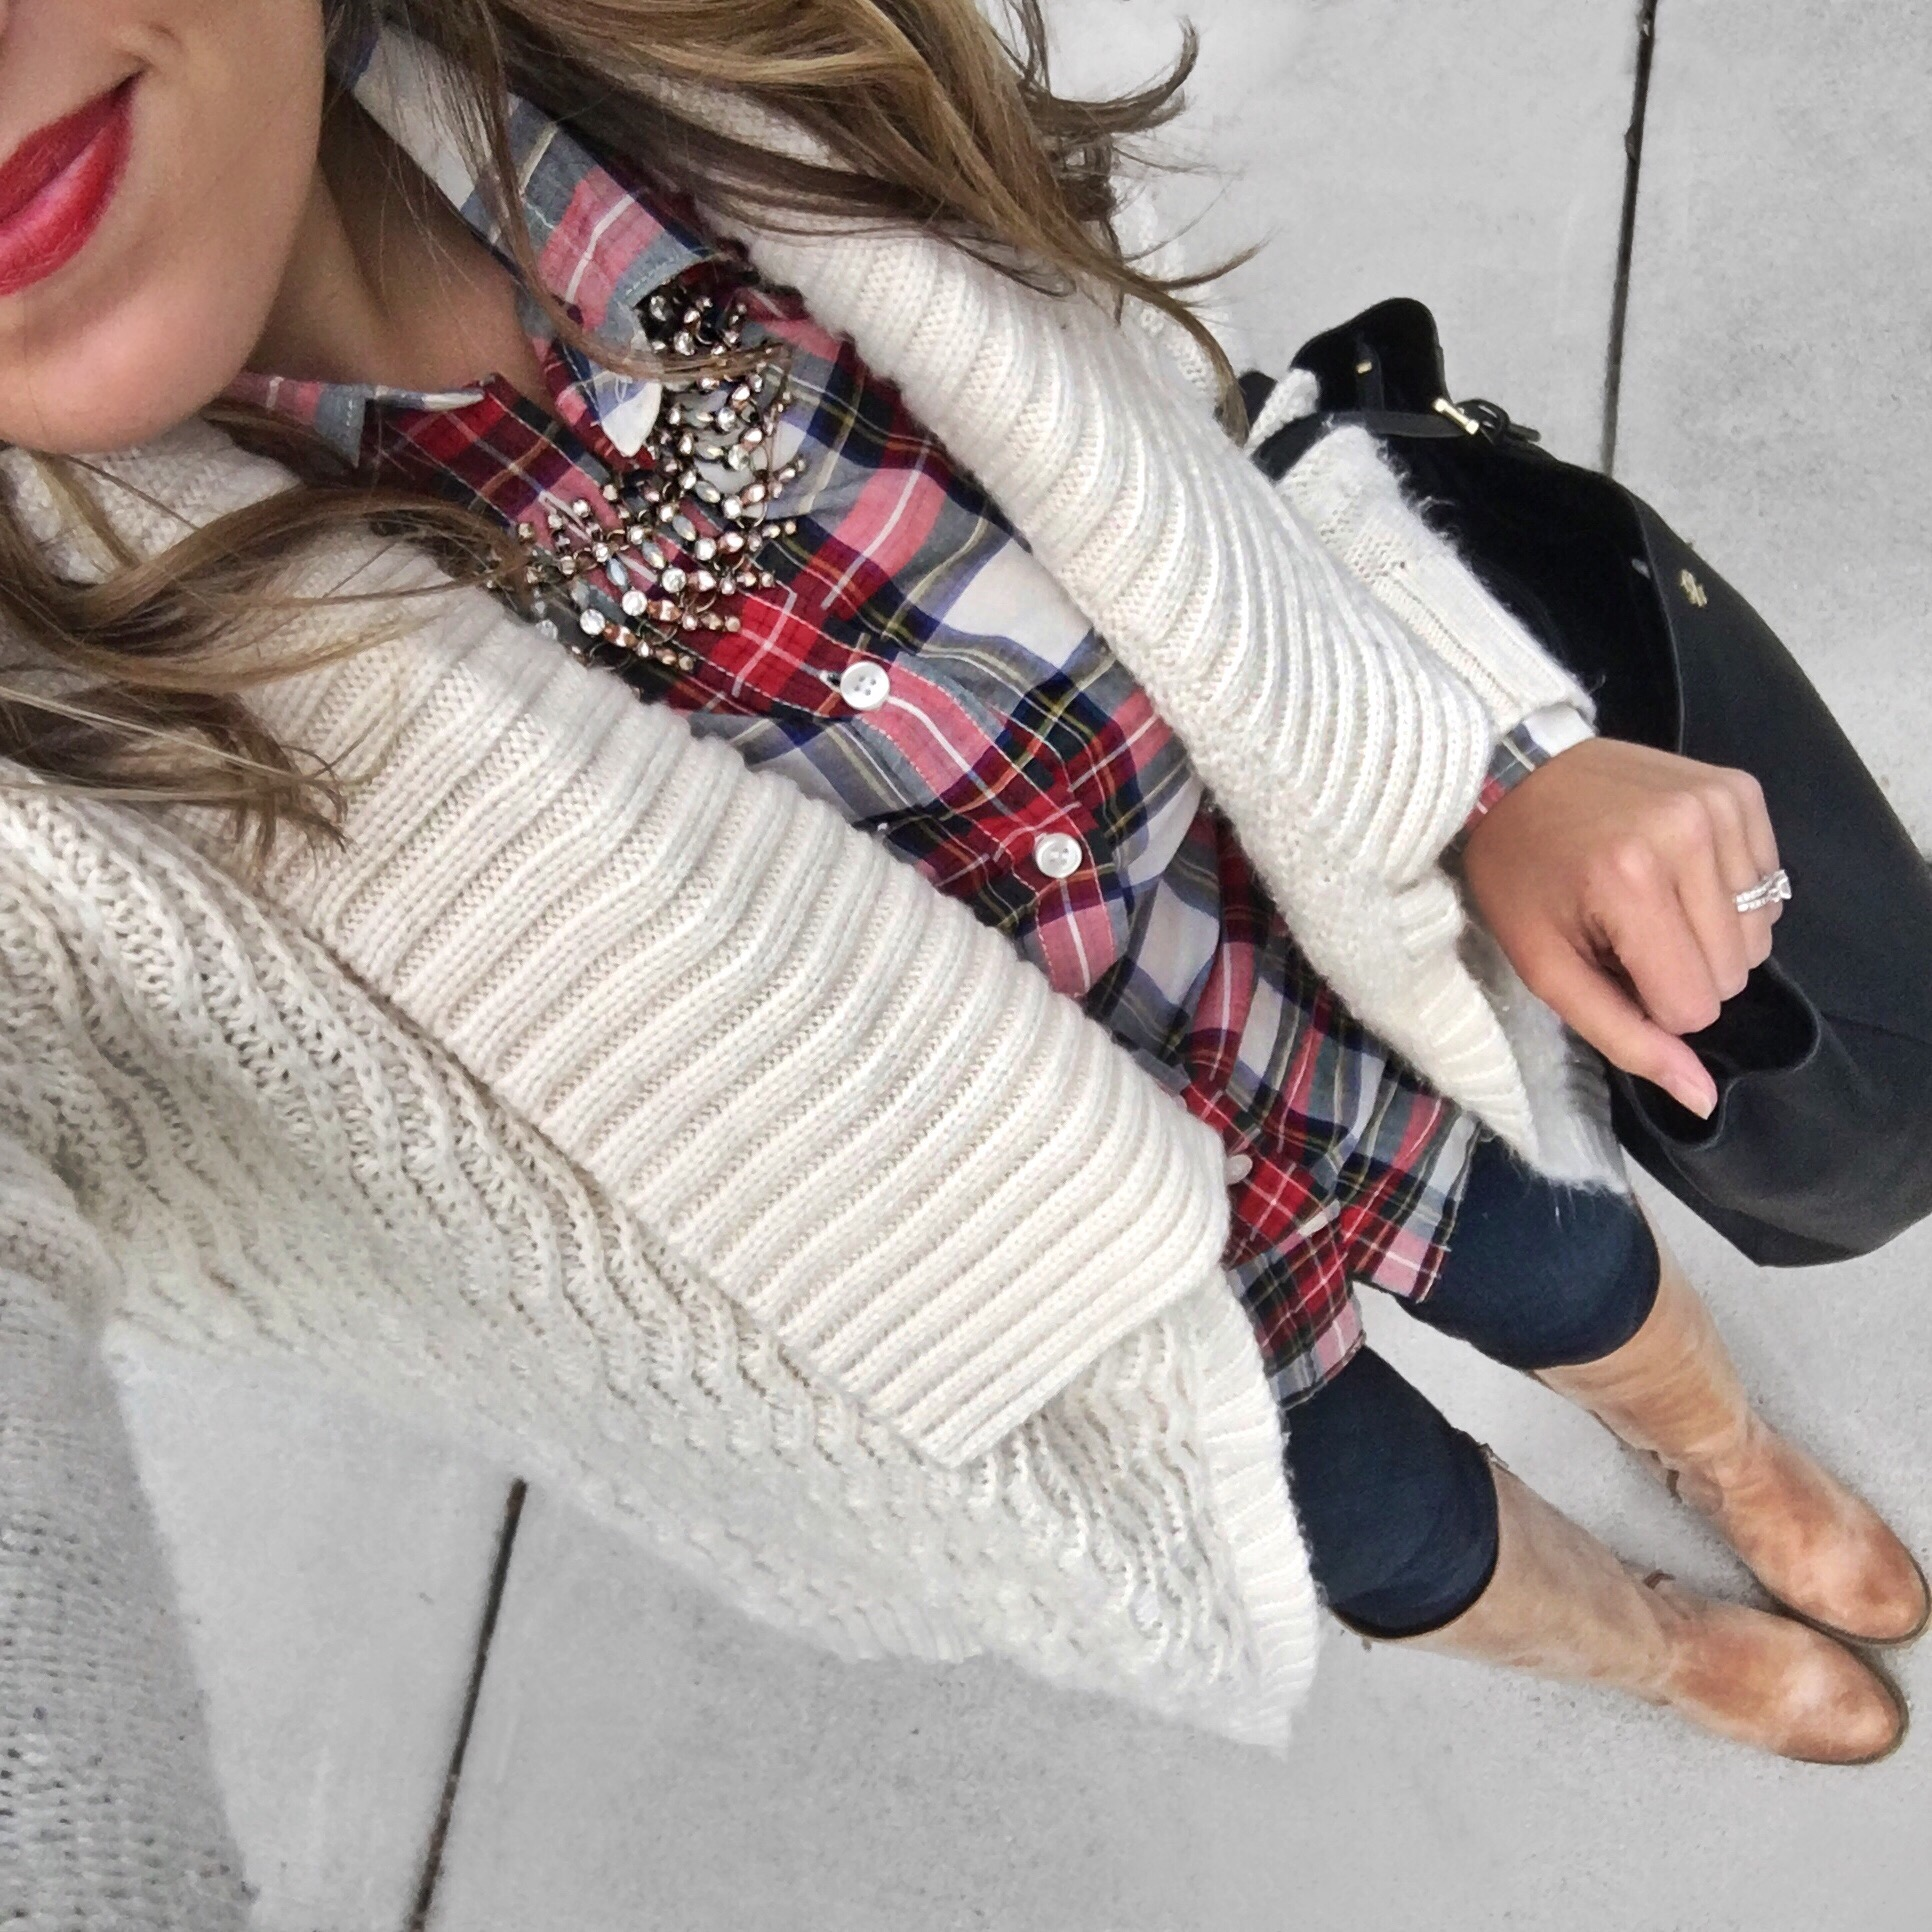 plaid winter outfit | bylaurenm.com | instagram.com/laurenmdix